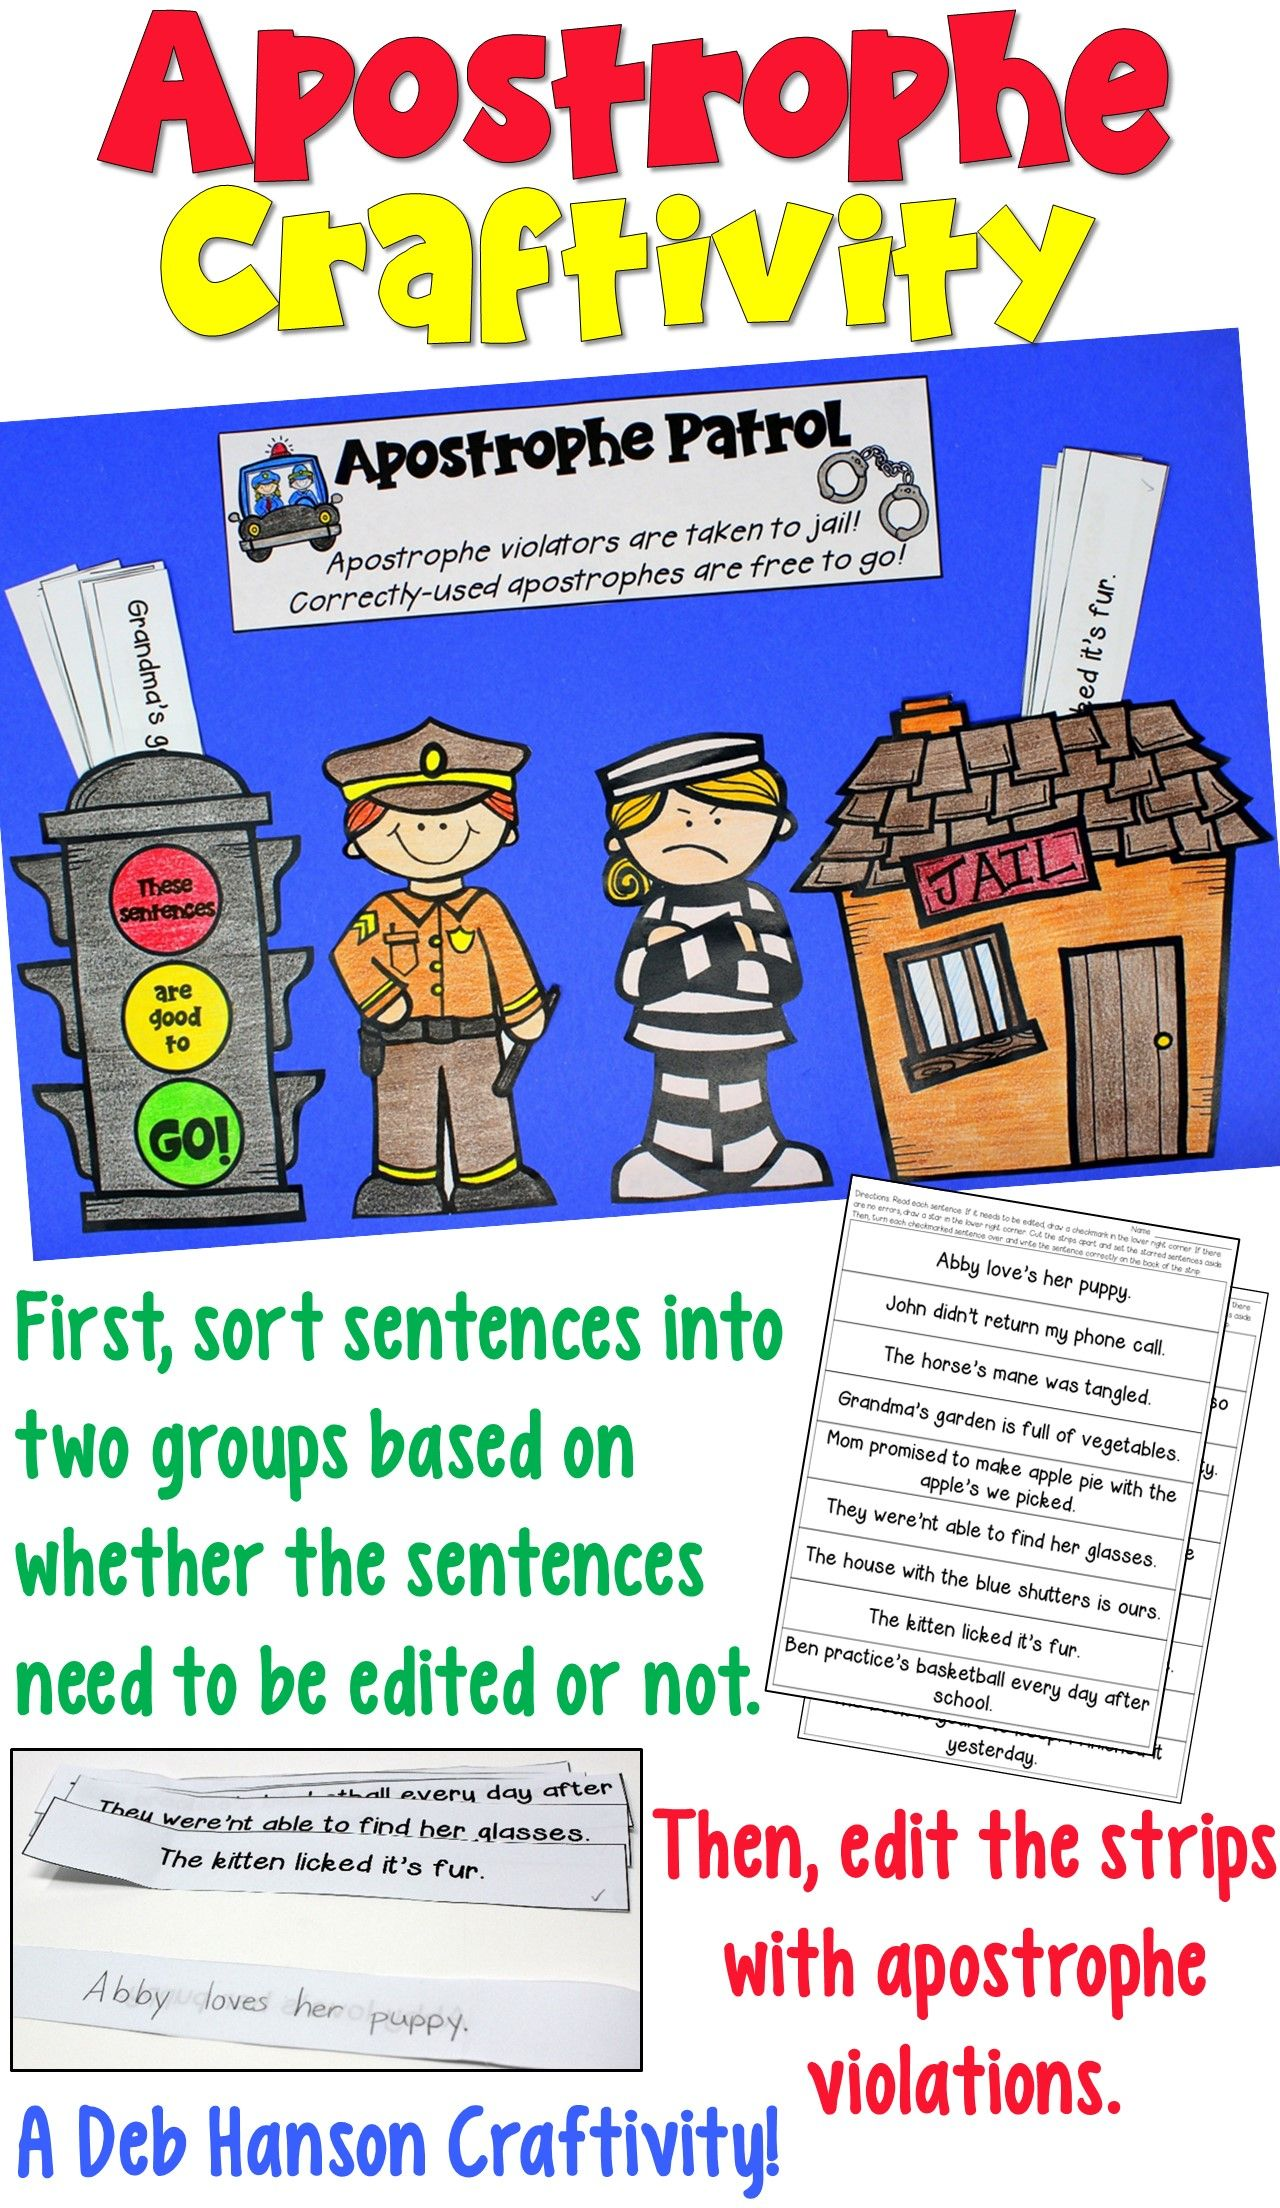 Apostrophe Patrol Craftivity Contractions And Possessives